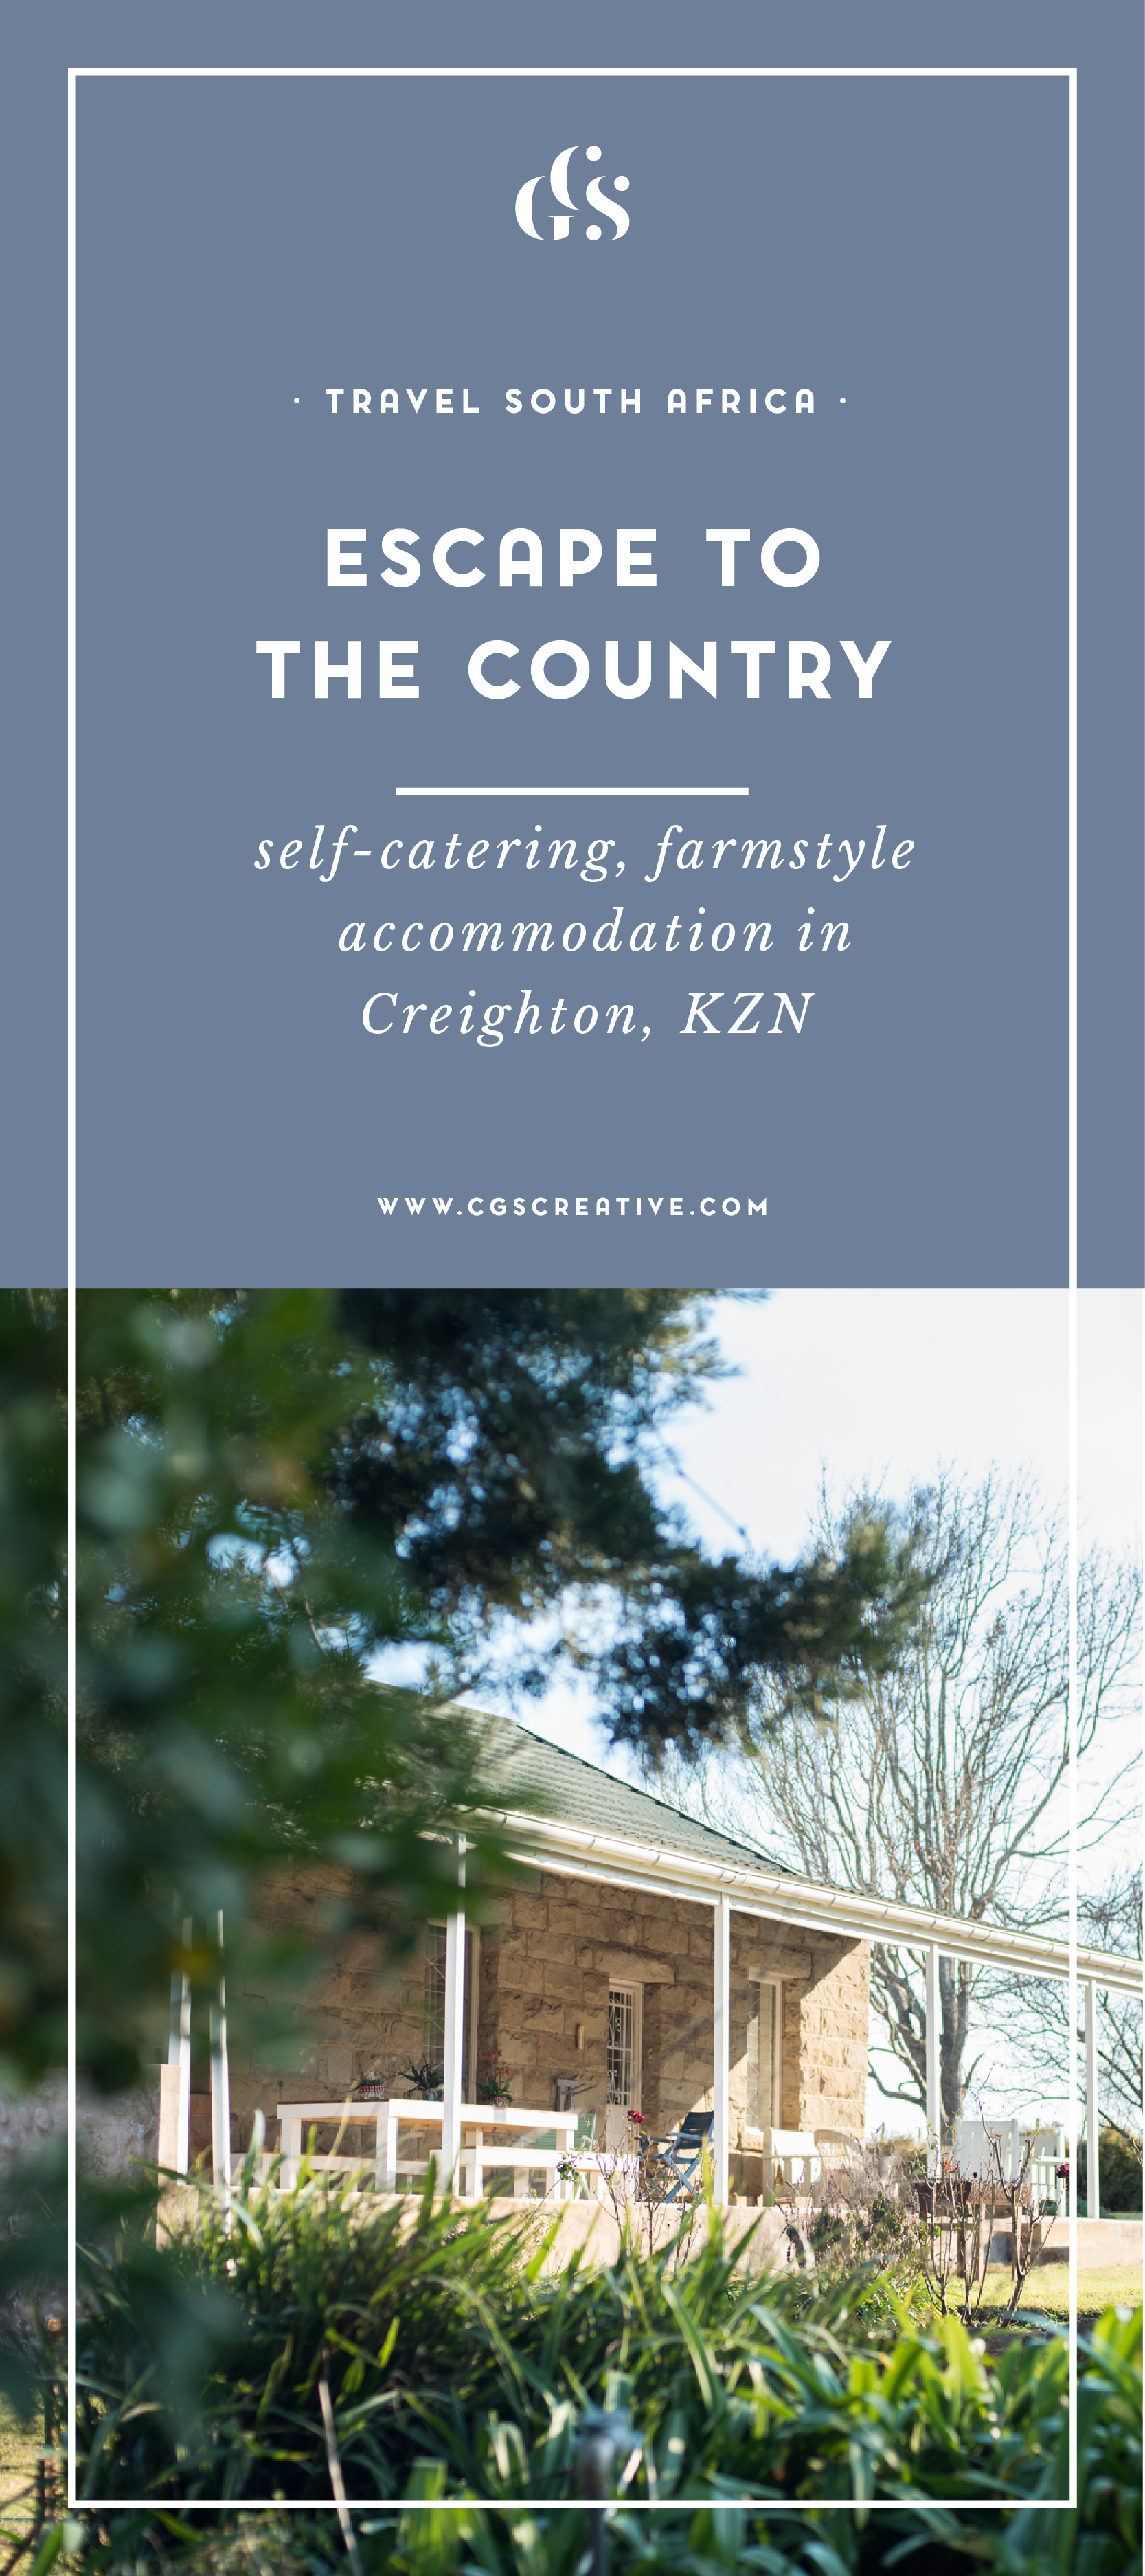 Selfcatering farmstyle accommodation in Creighton KZN_Artboard 3.png